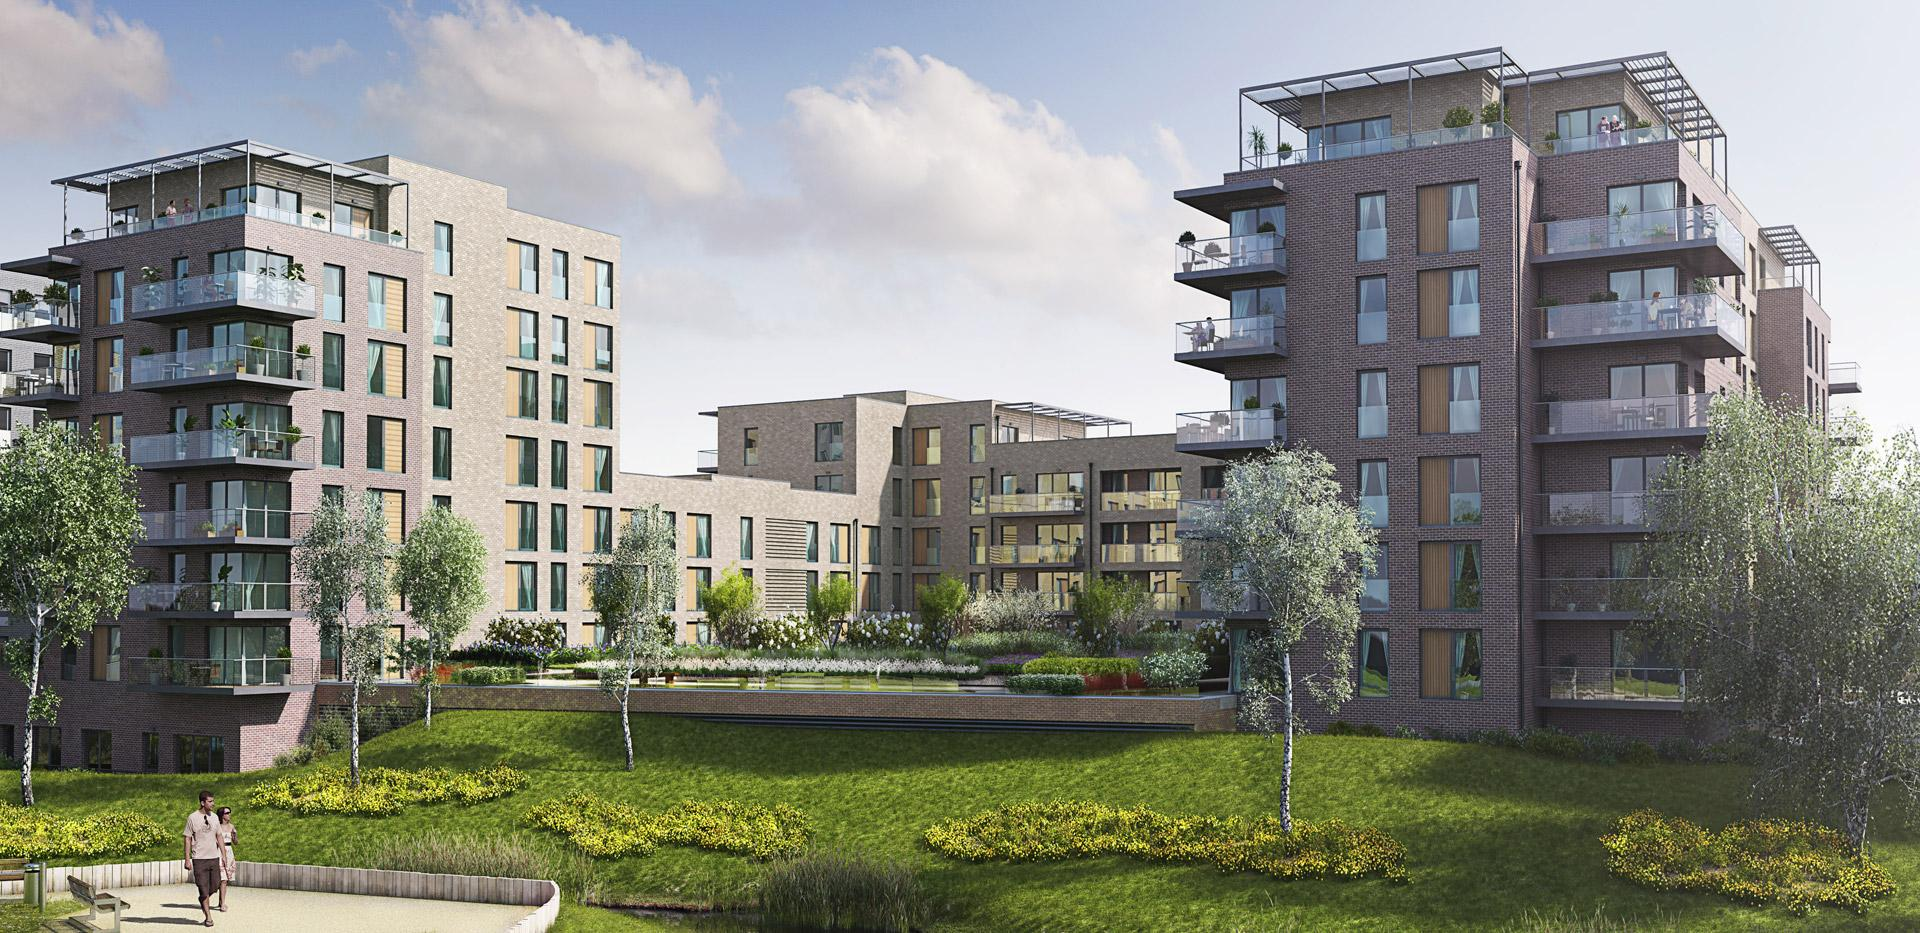 Berkeley Homes, Merlin Court, Blackheath Quarter, Kidbrooke Village, CGI, Exterior, Day